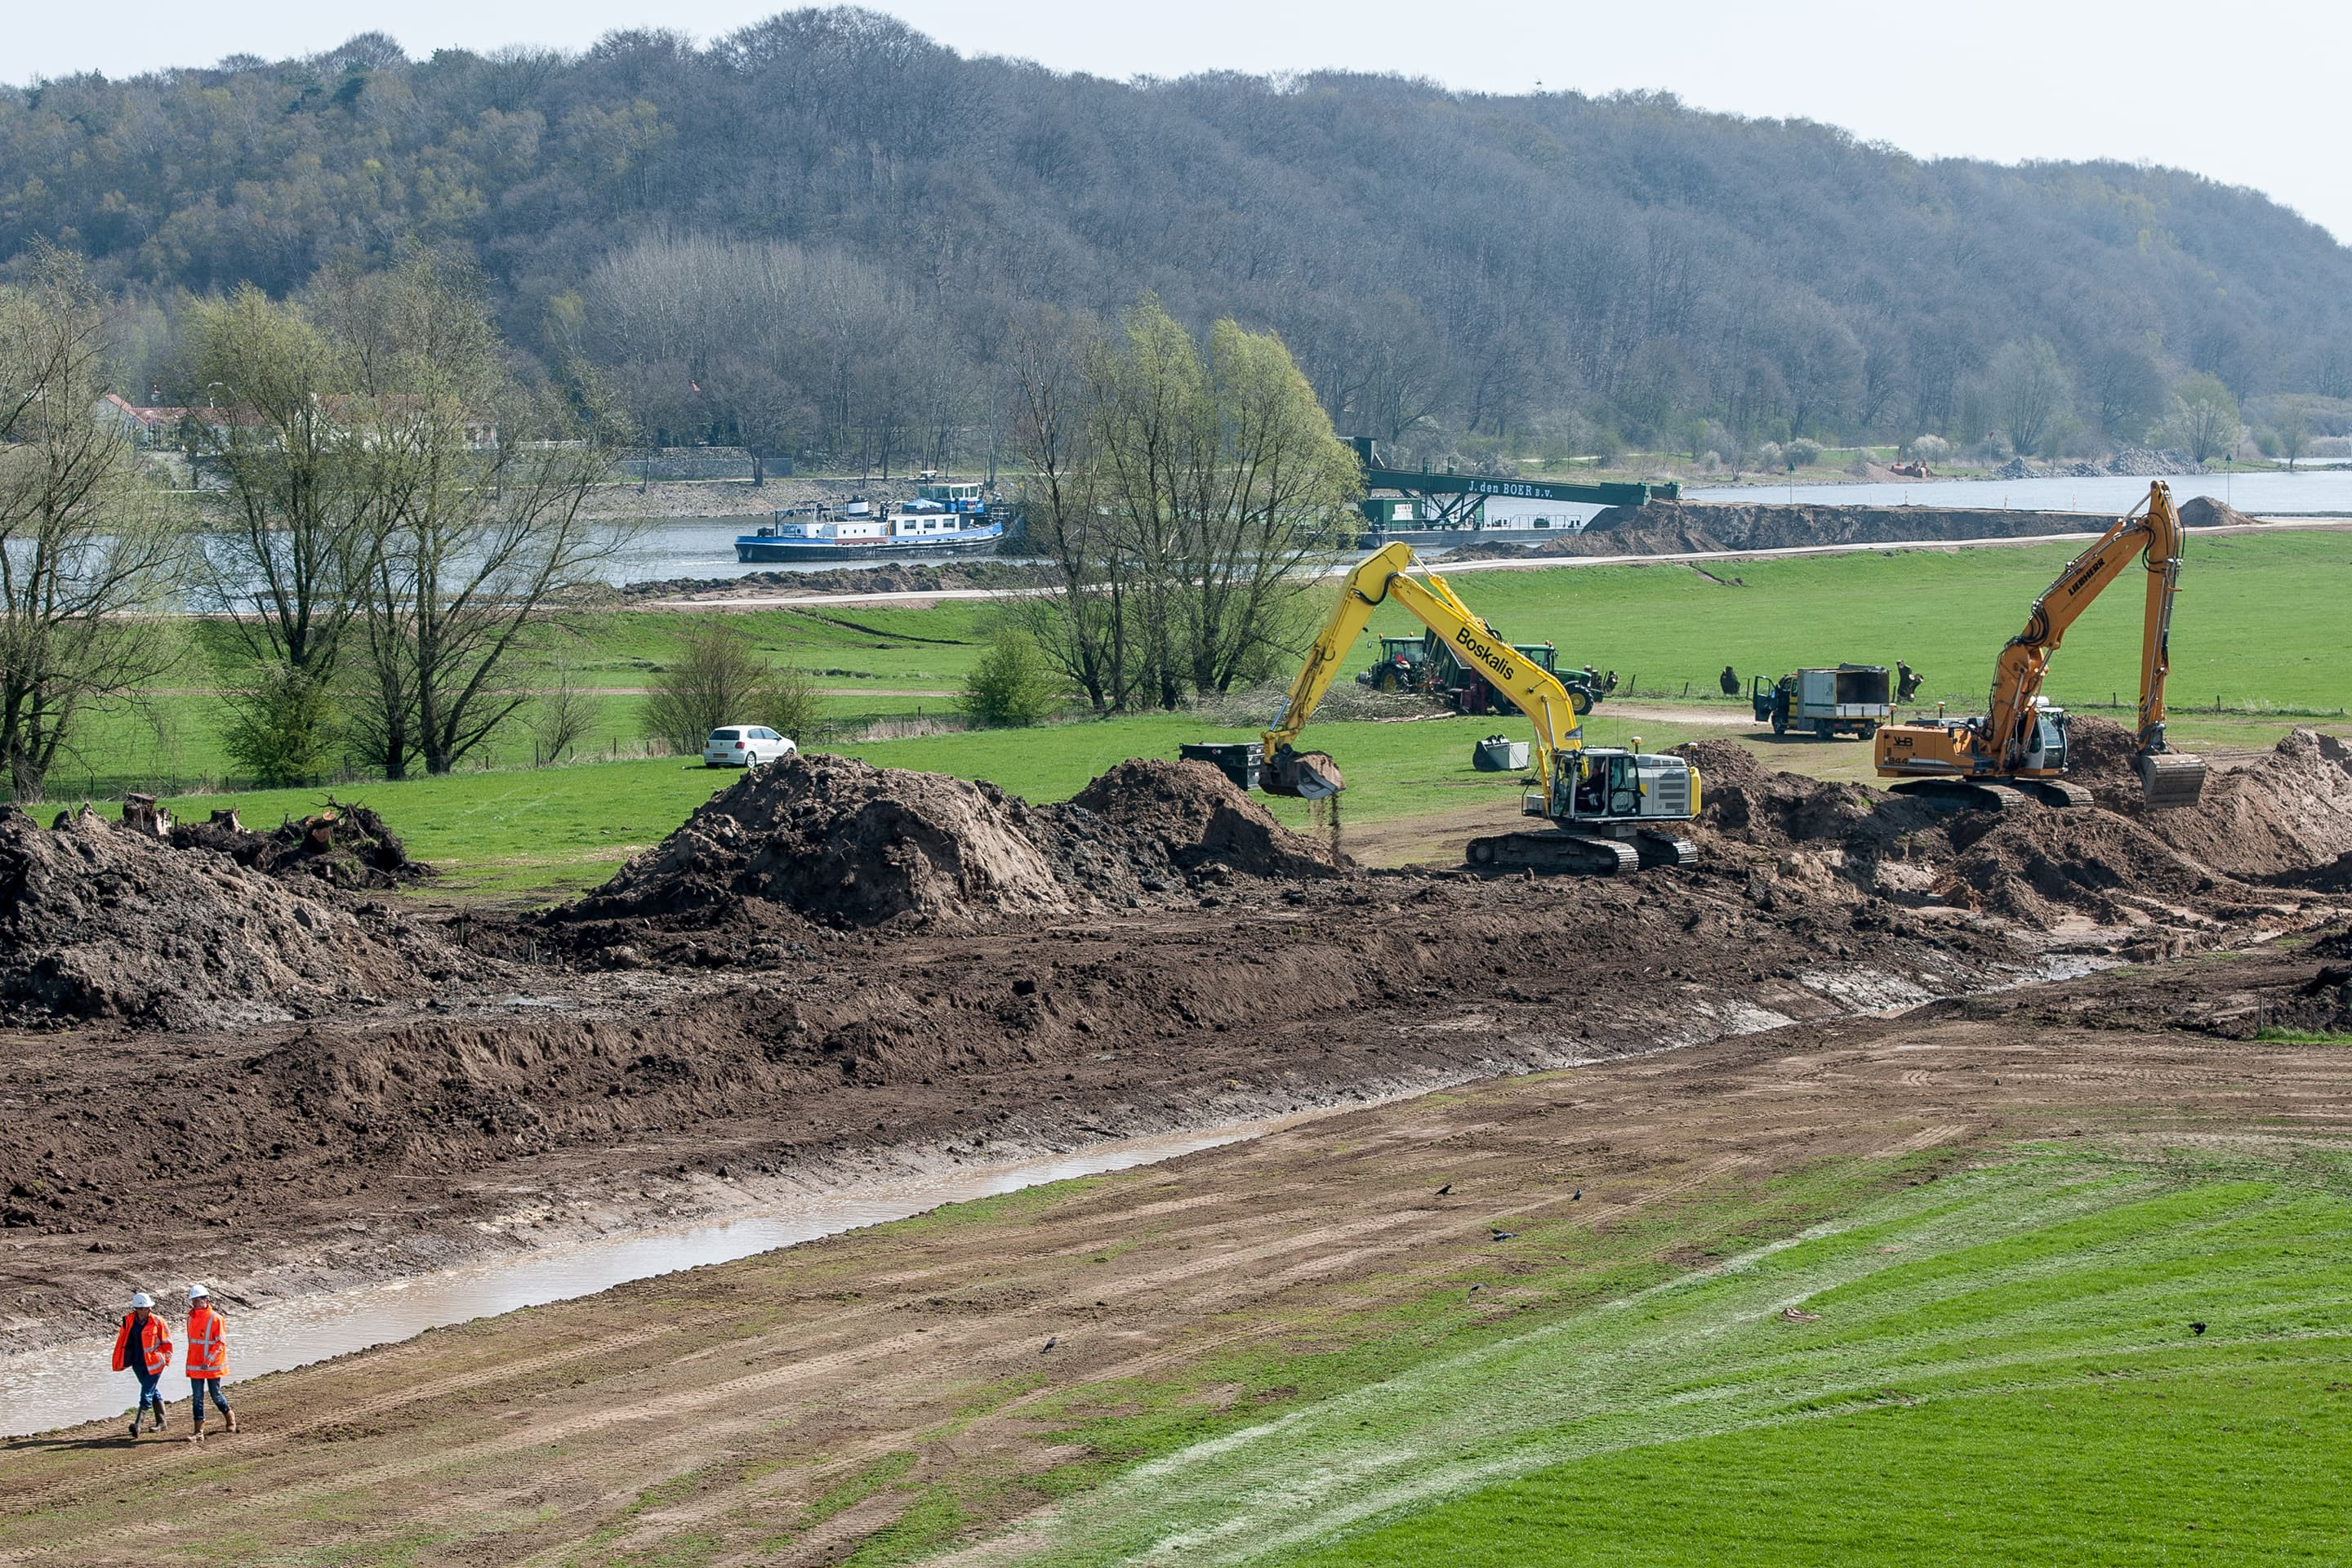 Widening the floodplains of the IJssel River